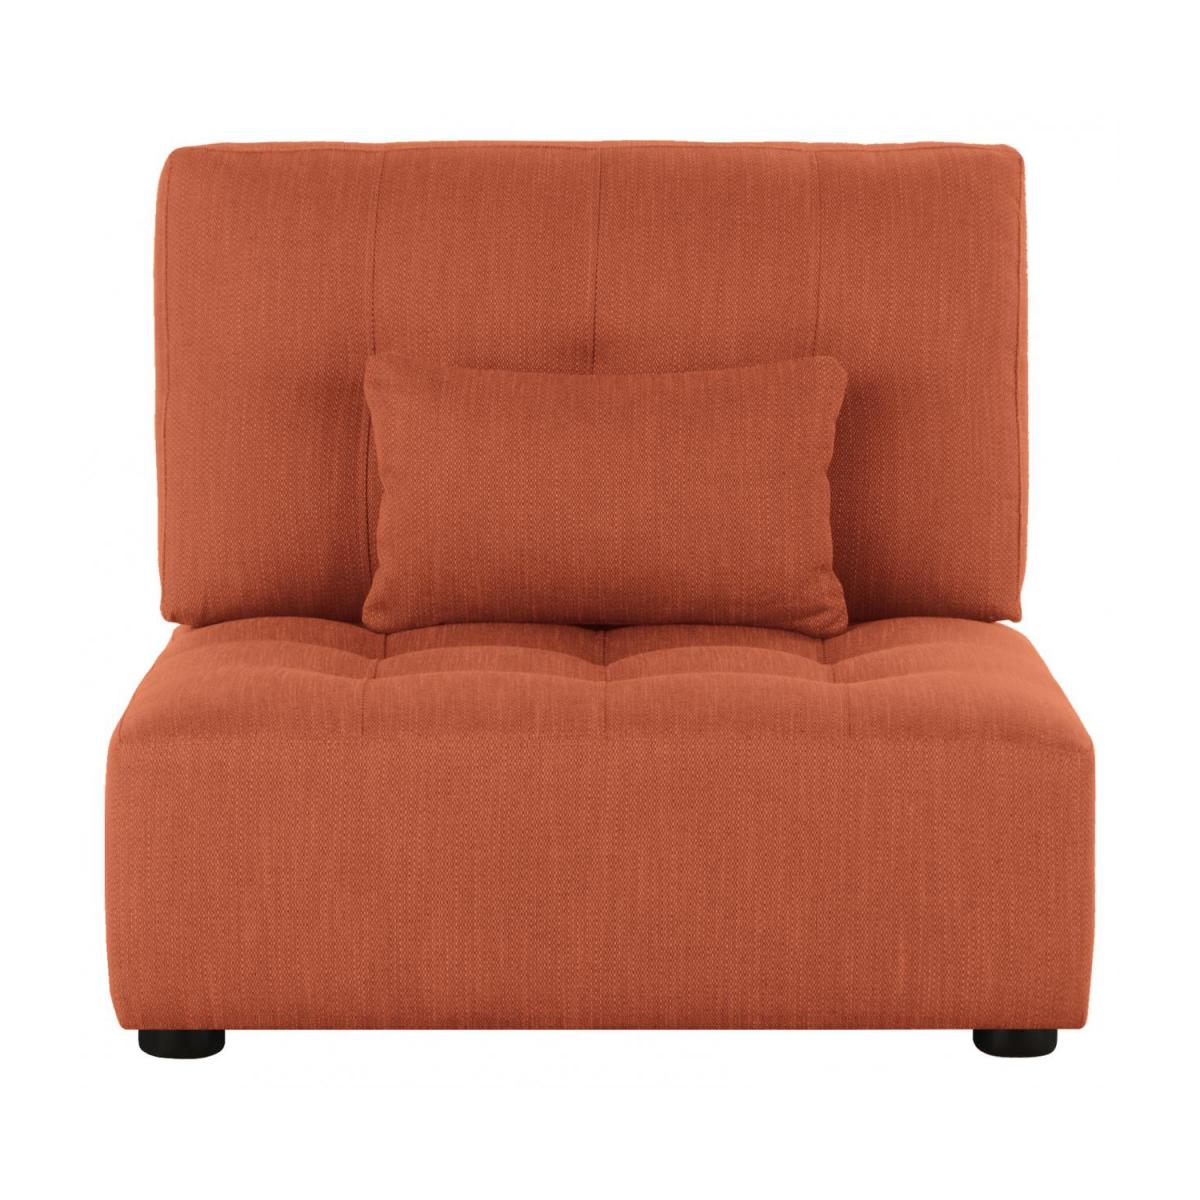 Sitzelement aus Stoff, orange n°2